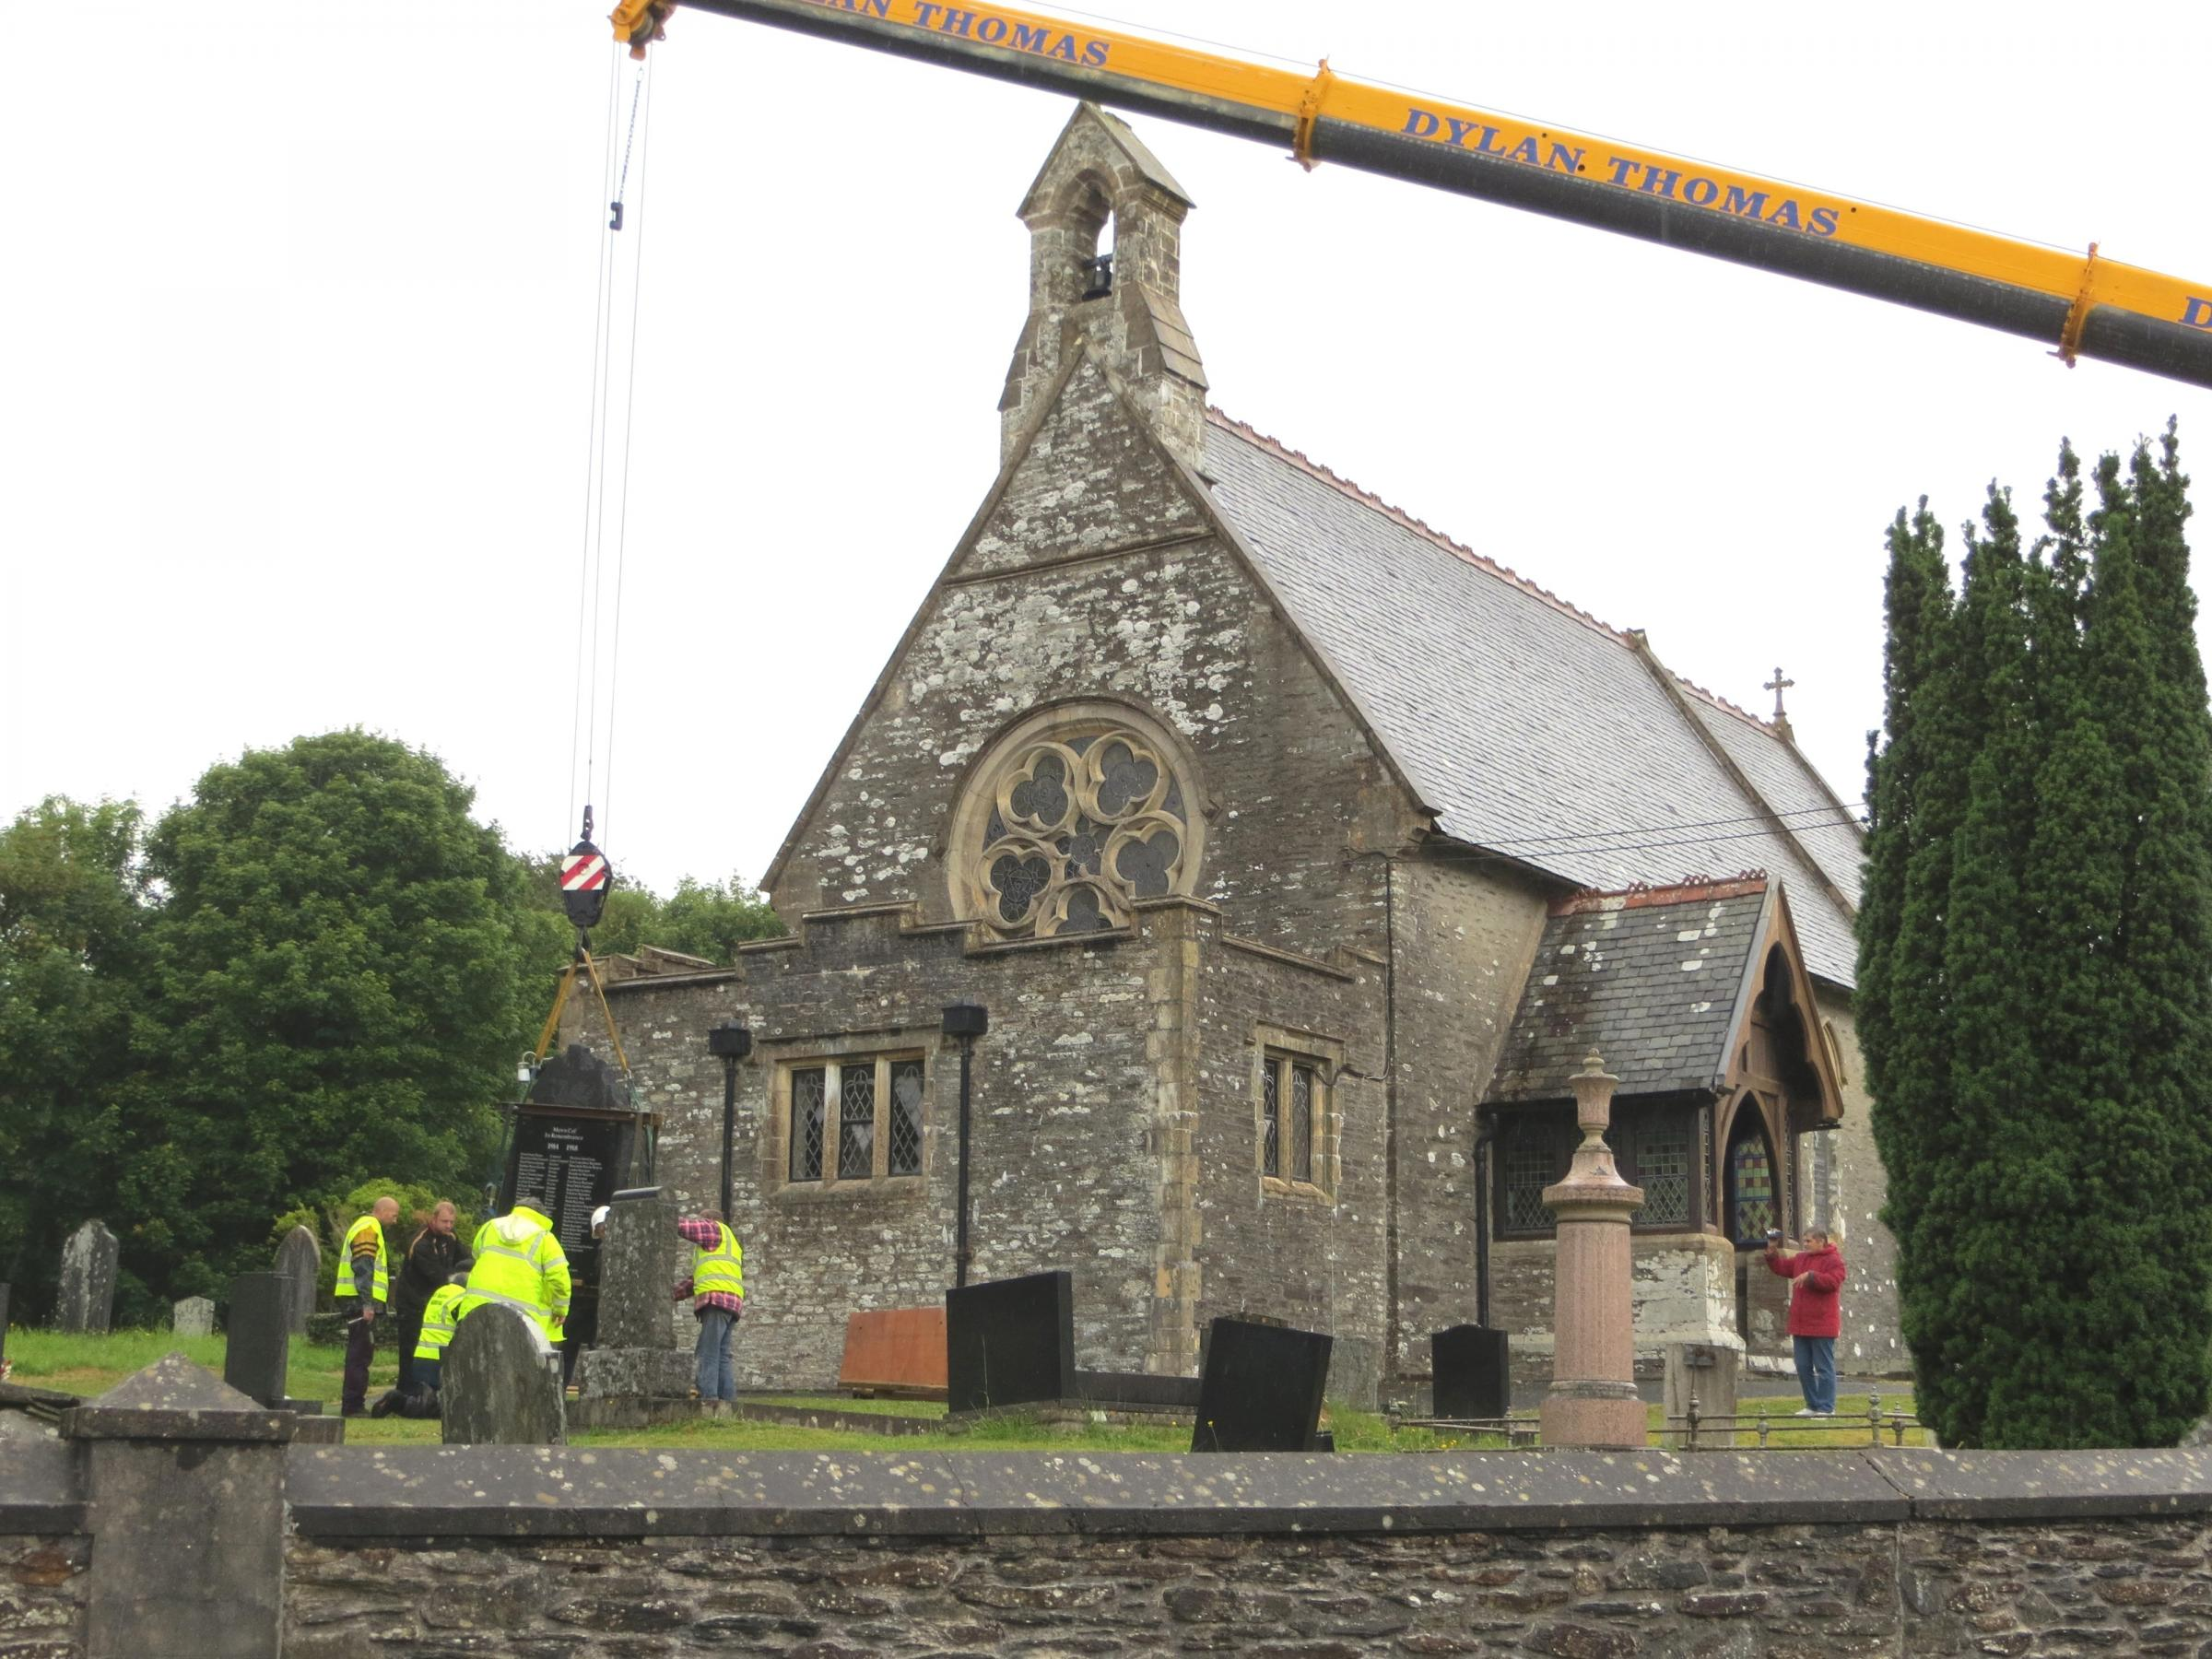 Eglwyswrw's war memorial being installed (7843160)